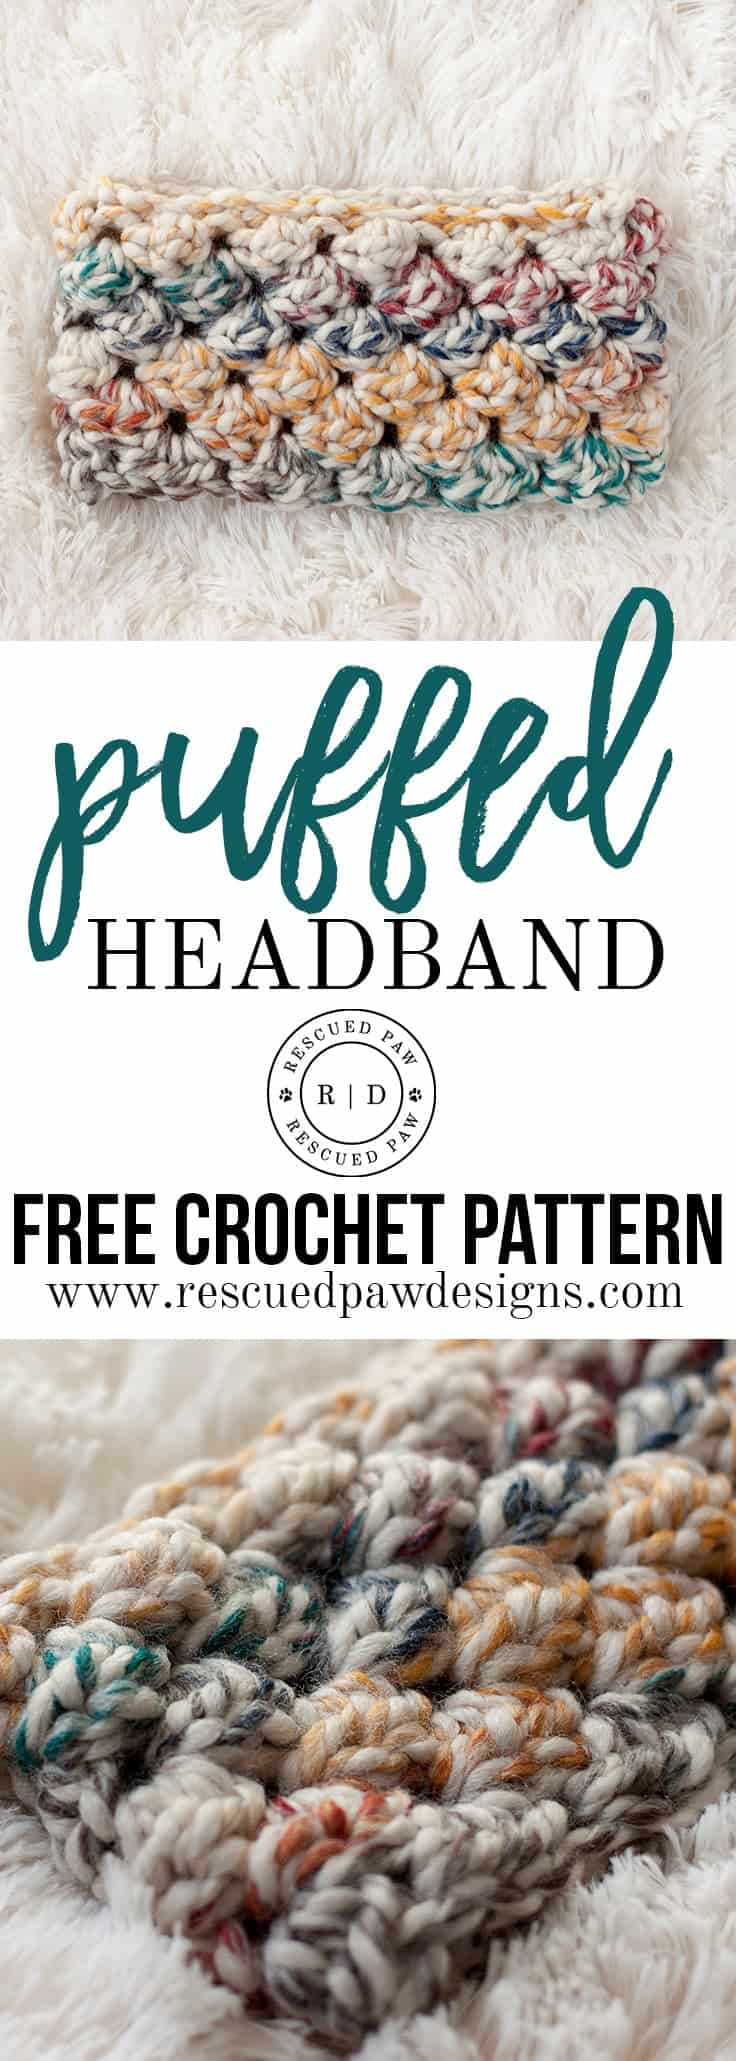 Puffed Headband Crochet Pattern picture